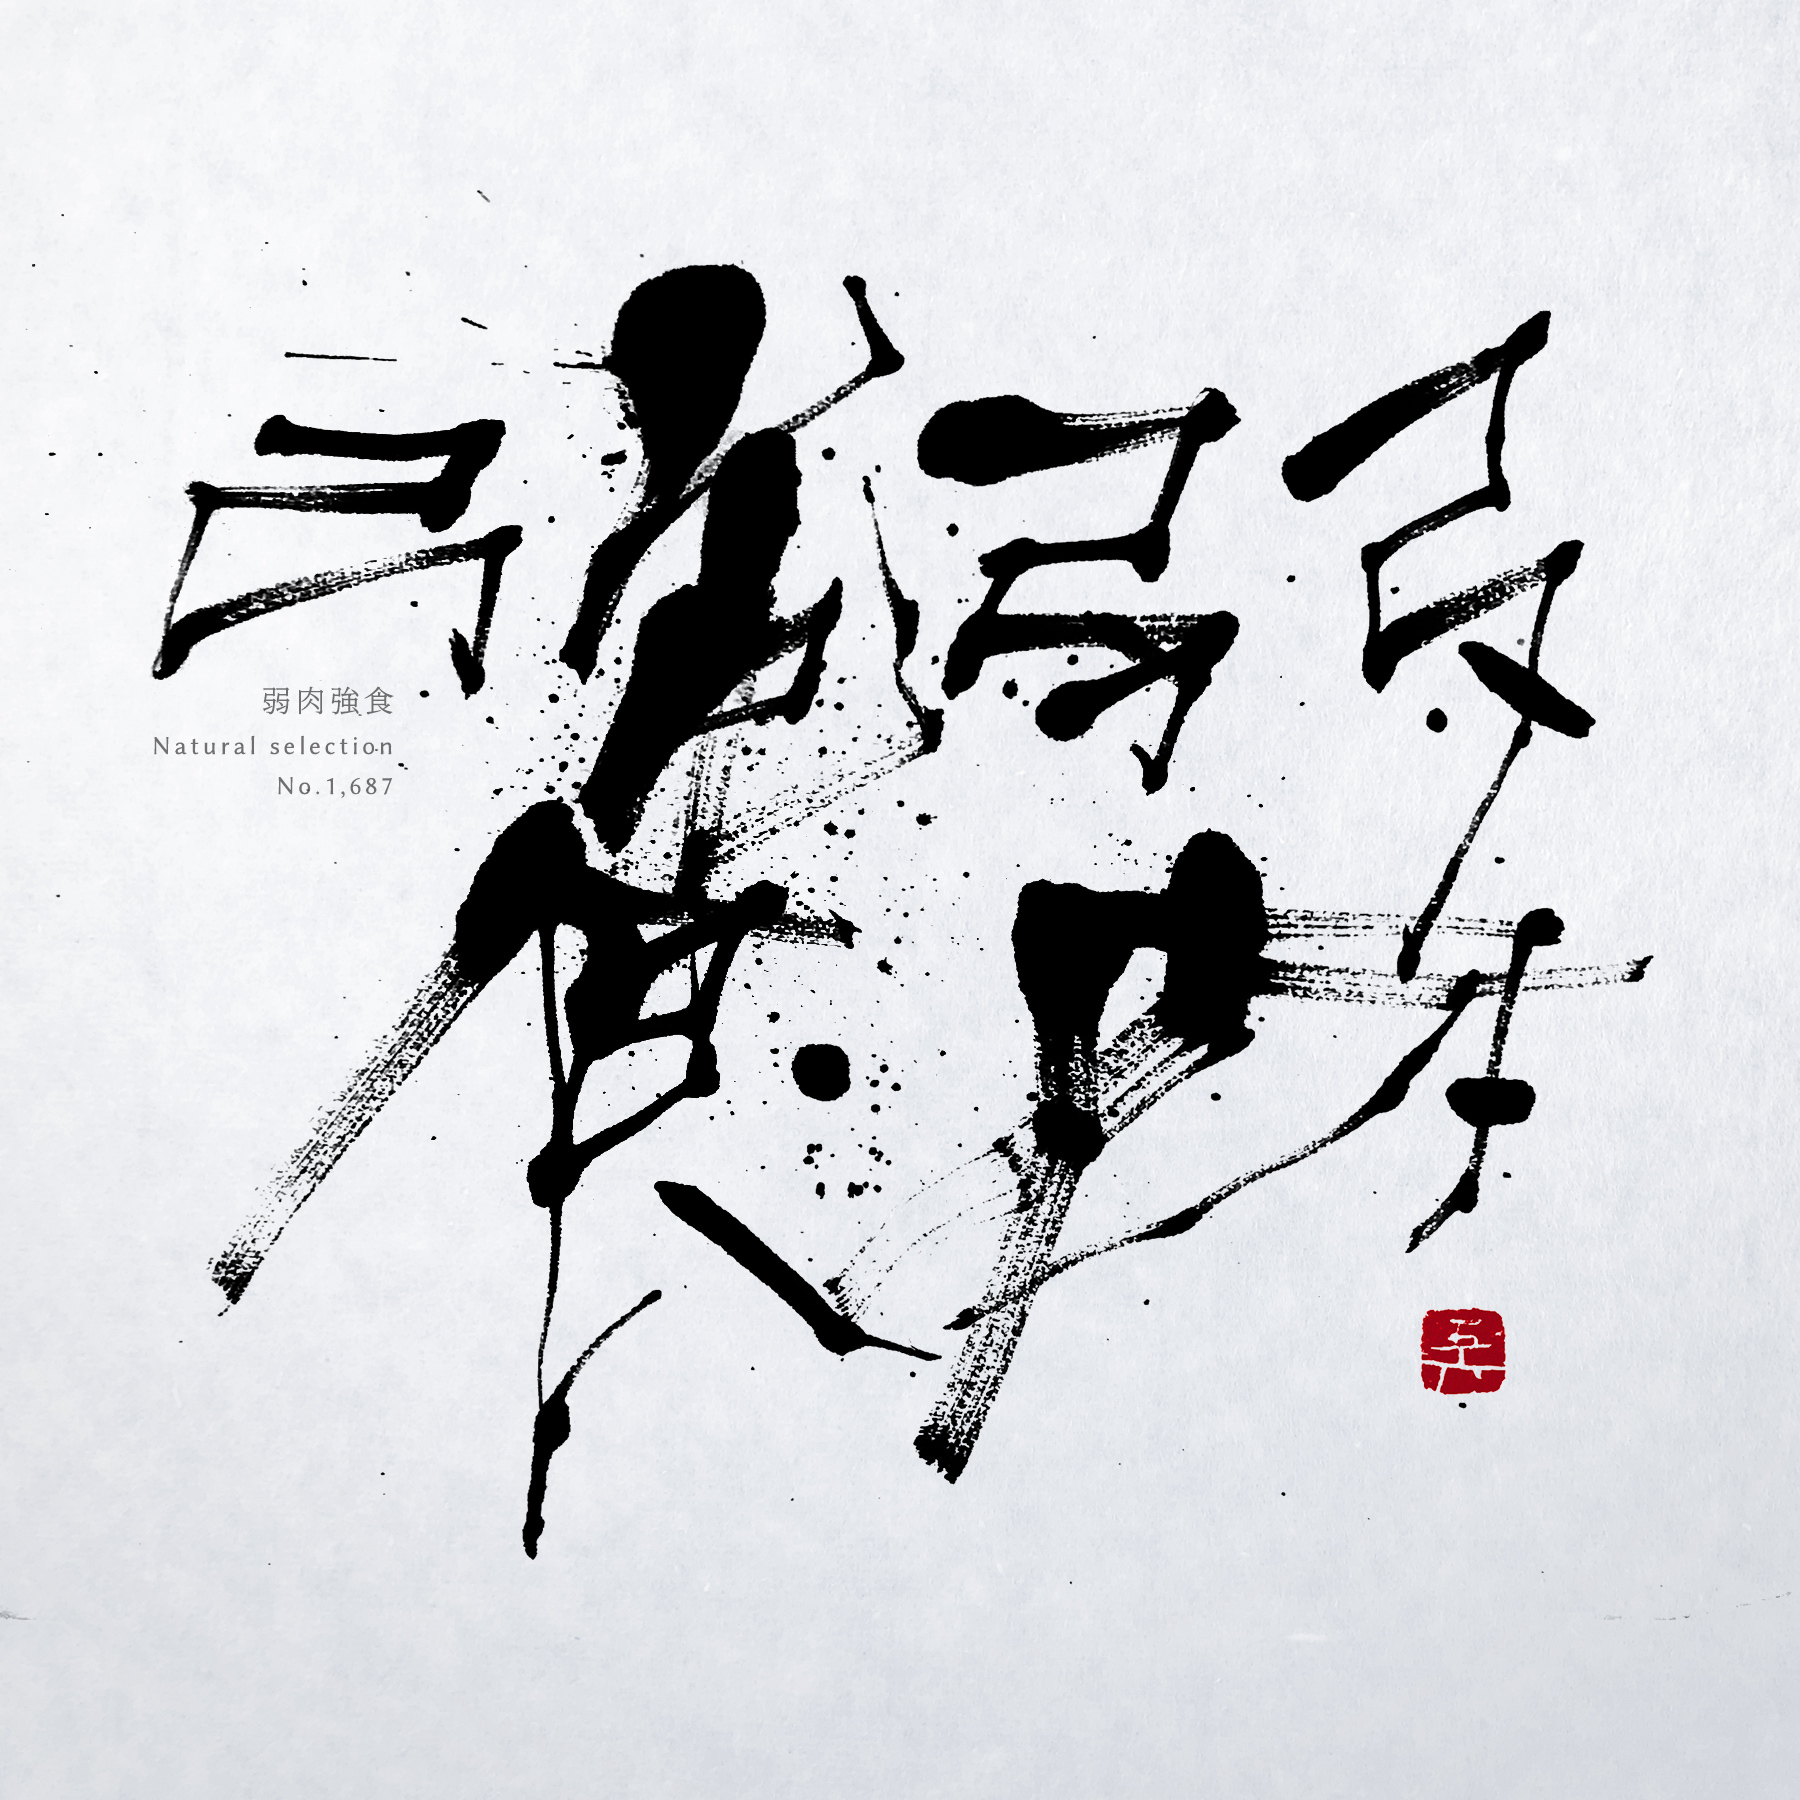 弱肉強食 | Natural selection 書道作品 japaneseart japanese calligraphy 書家 田川悟郎 Goroh Tagawa